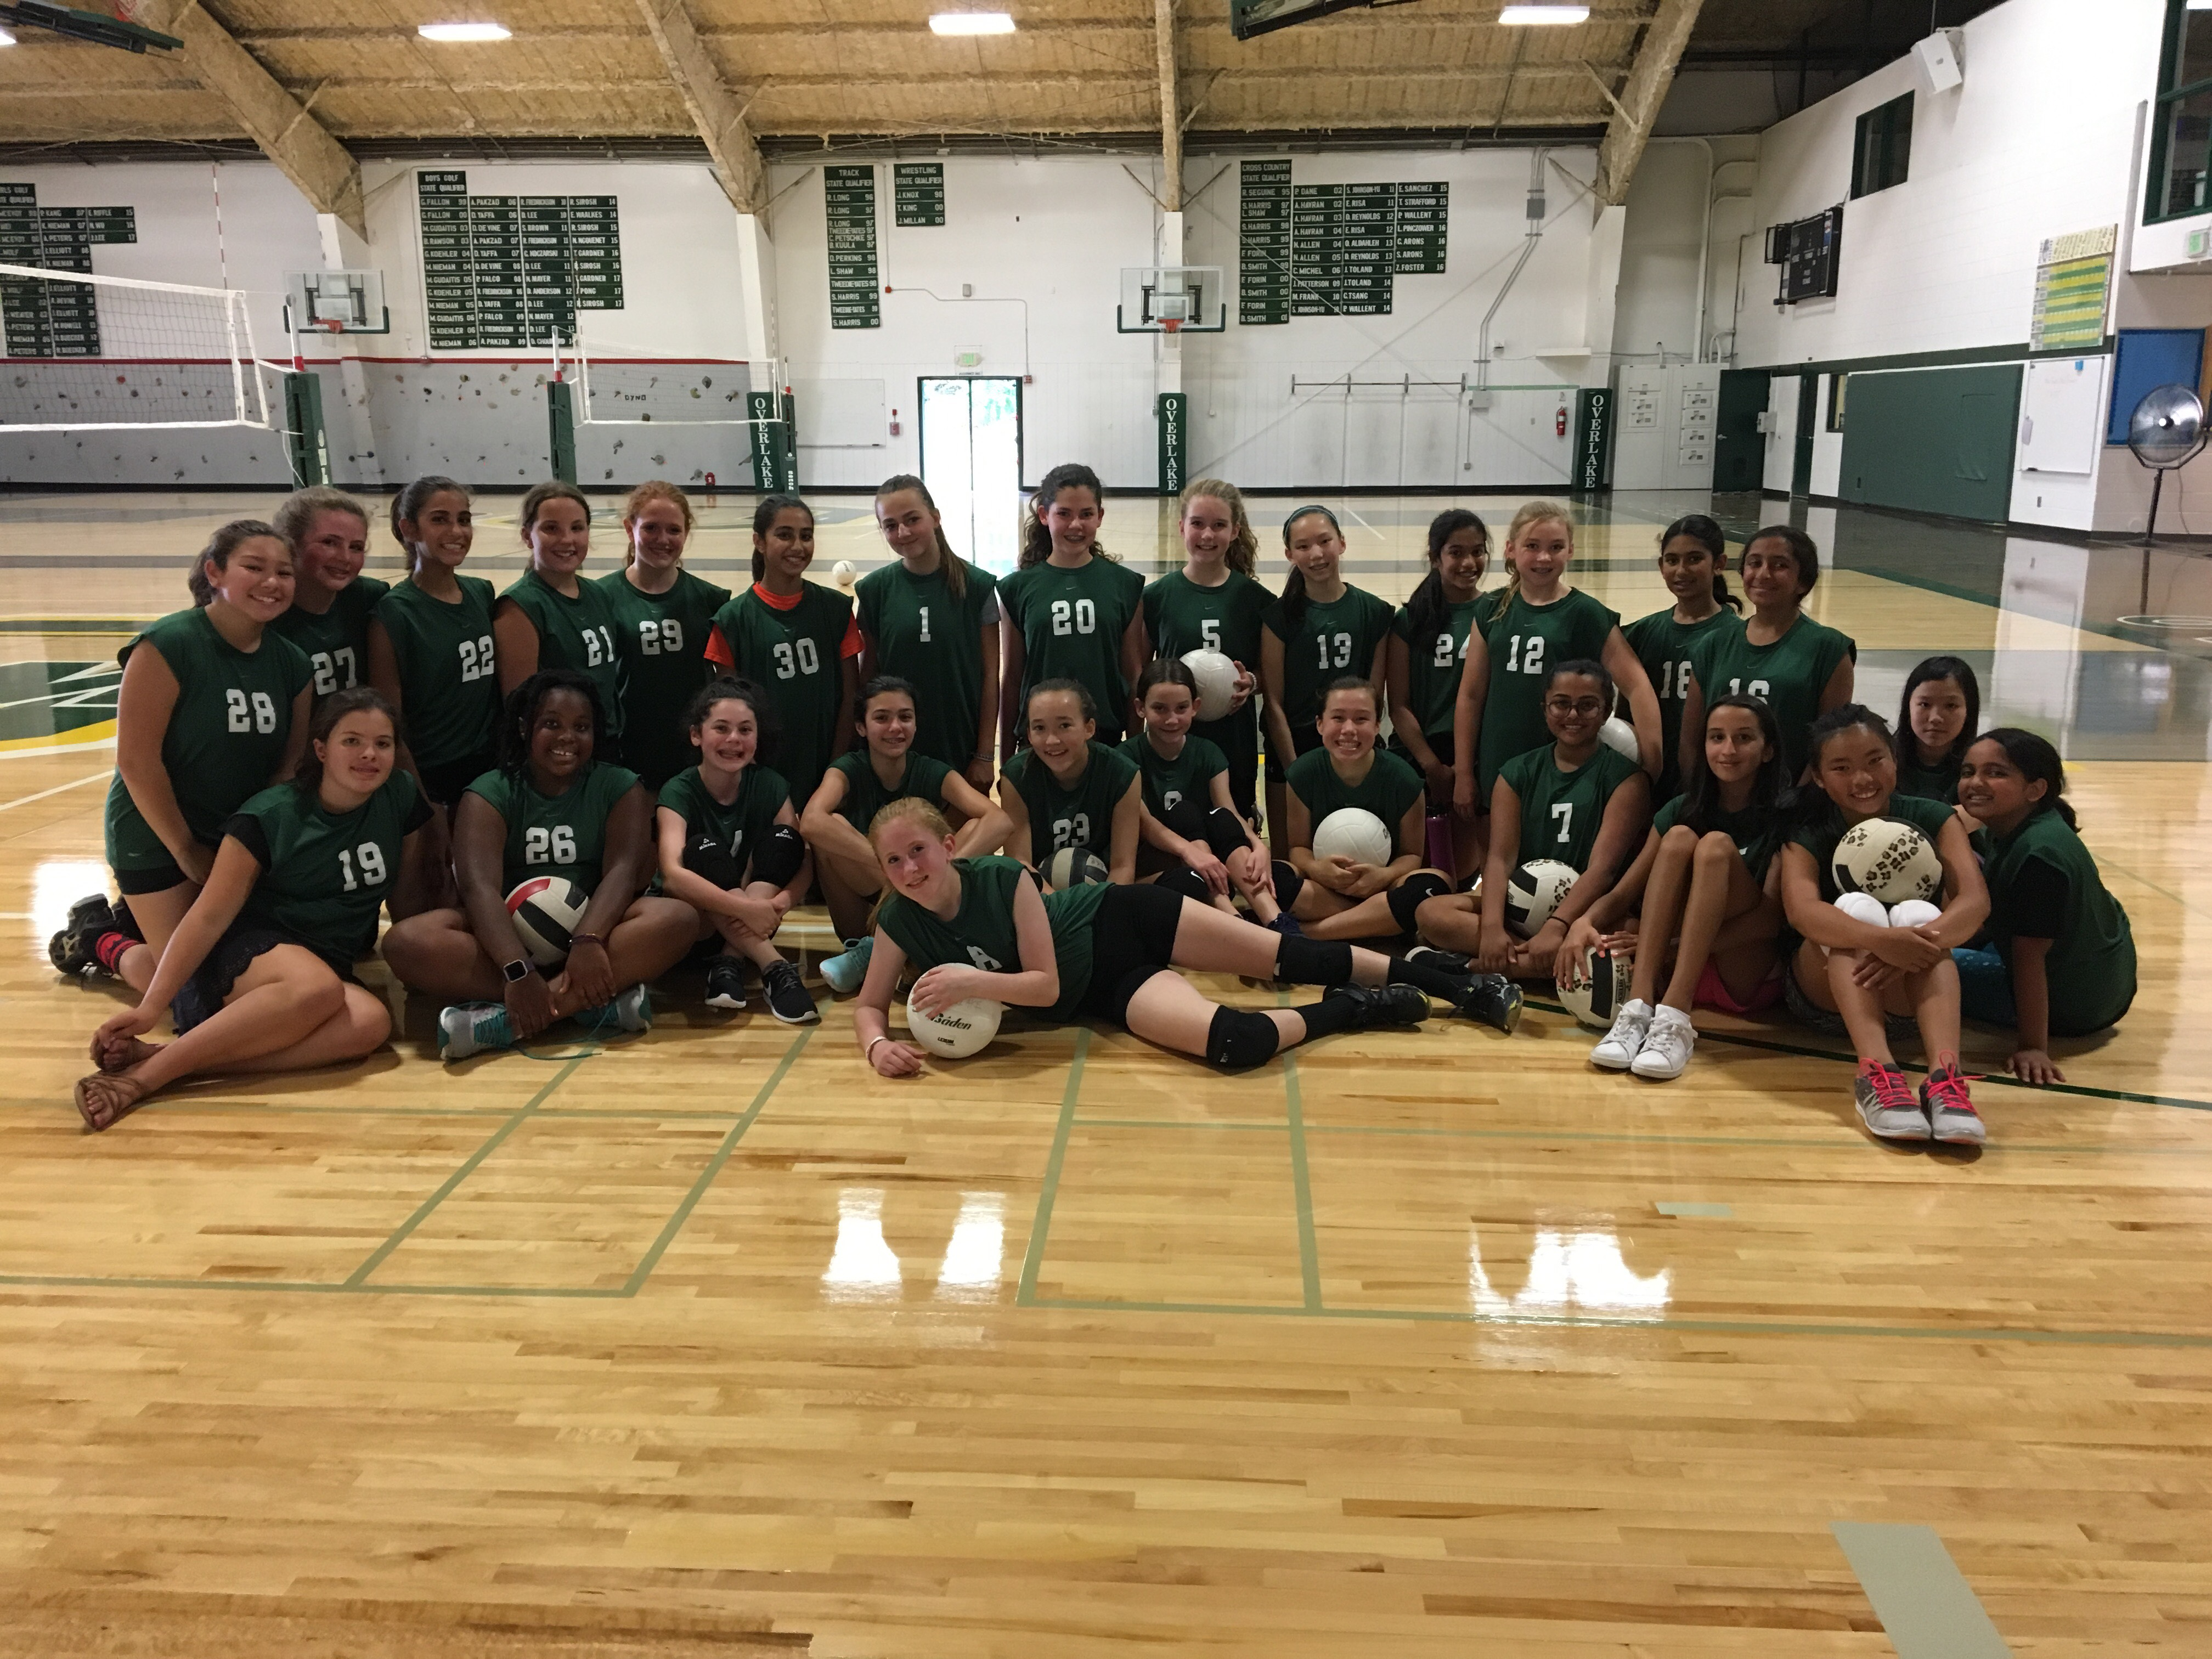 MS Girls Volleyball